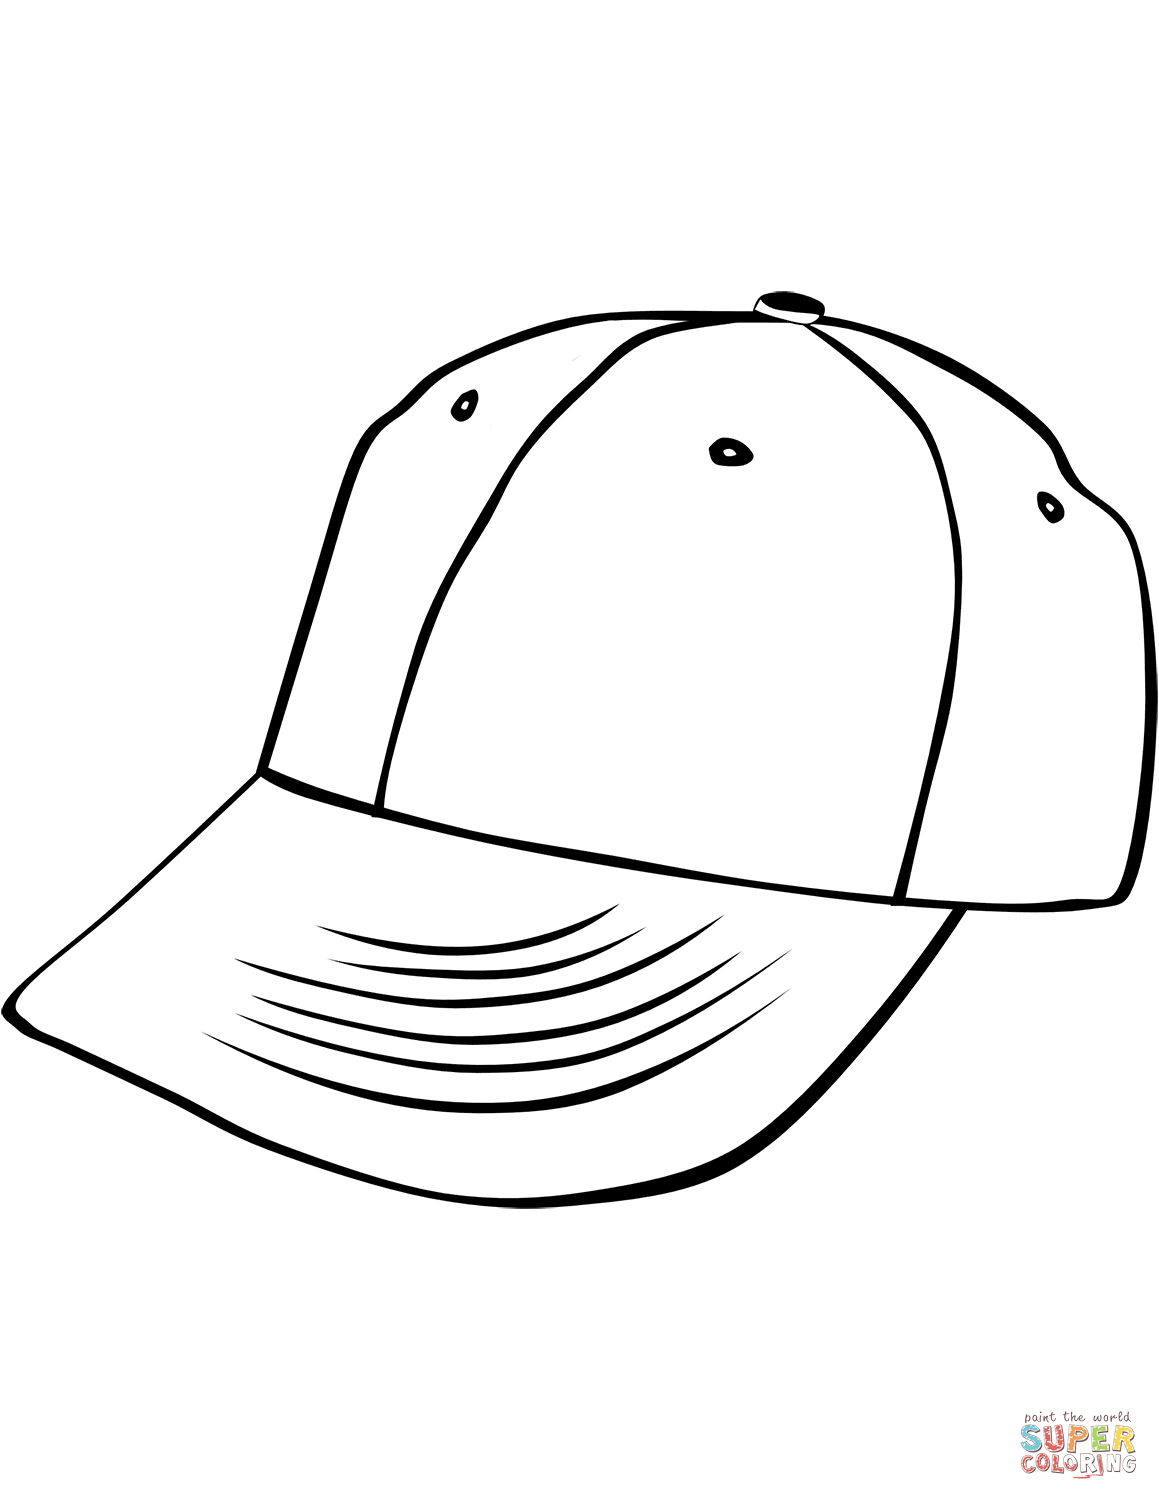 Baseball Cap Drawing At Getdrawings